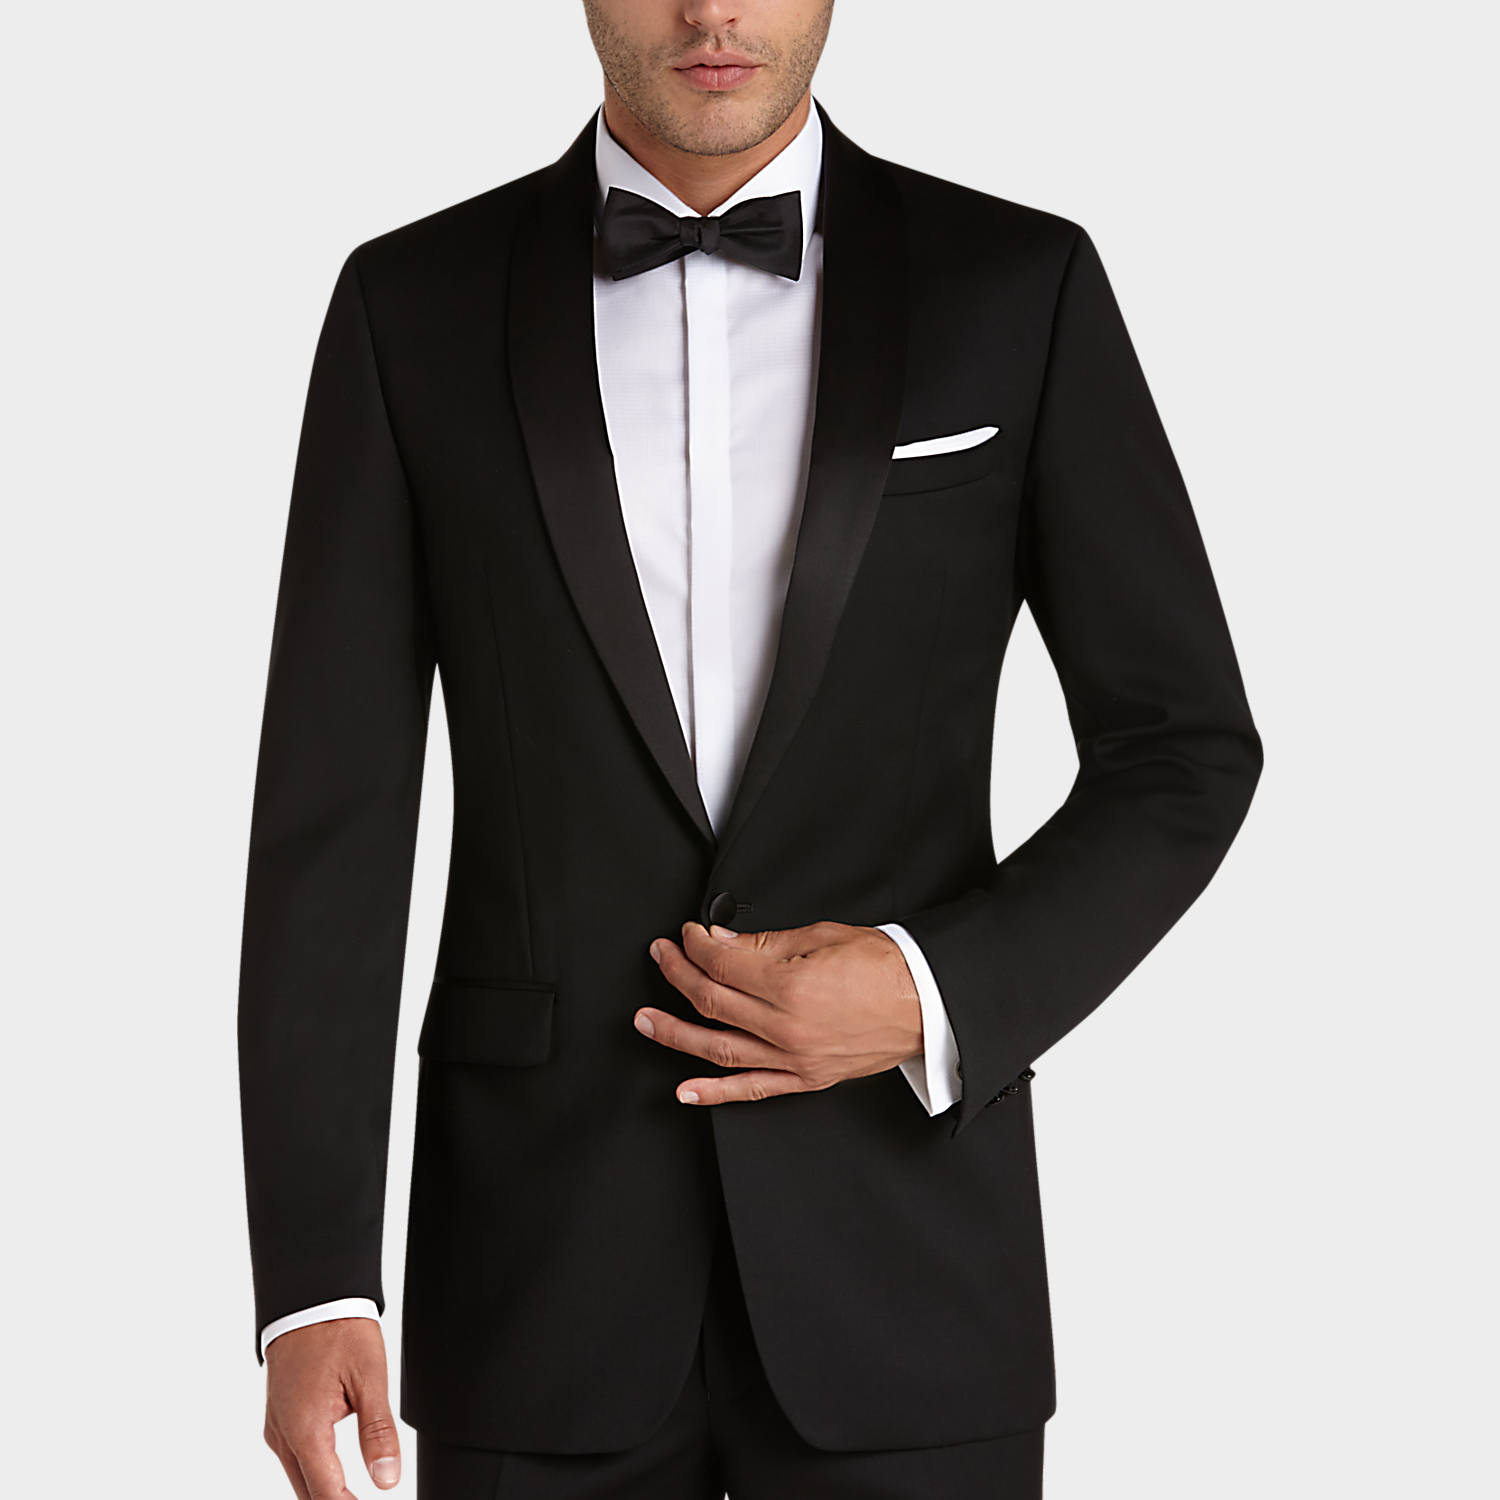 mens black suits, suits - calvin klein black slim fit tuxedo - menu0027s  wearhouse FCSRCUM